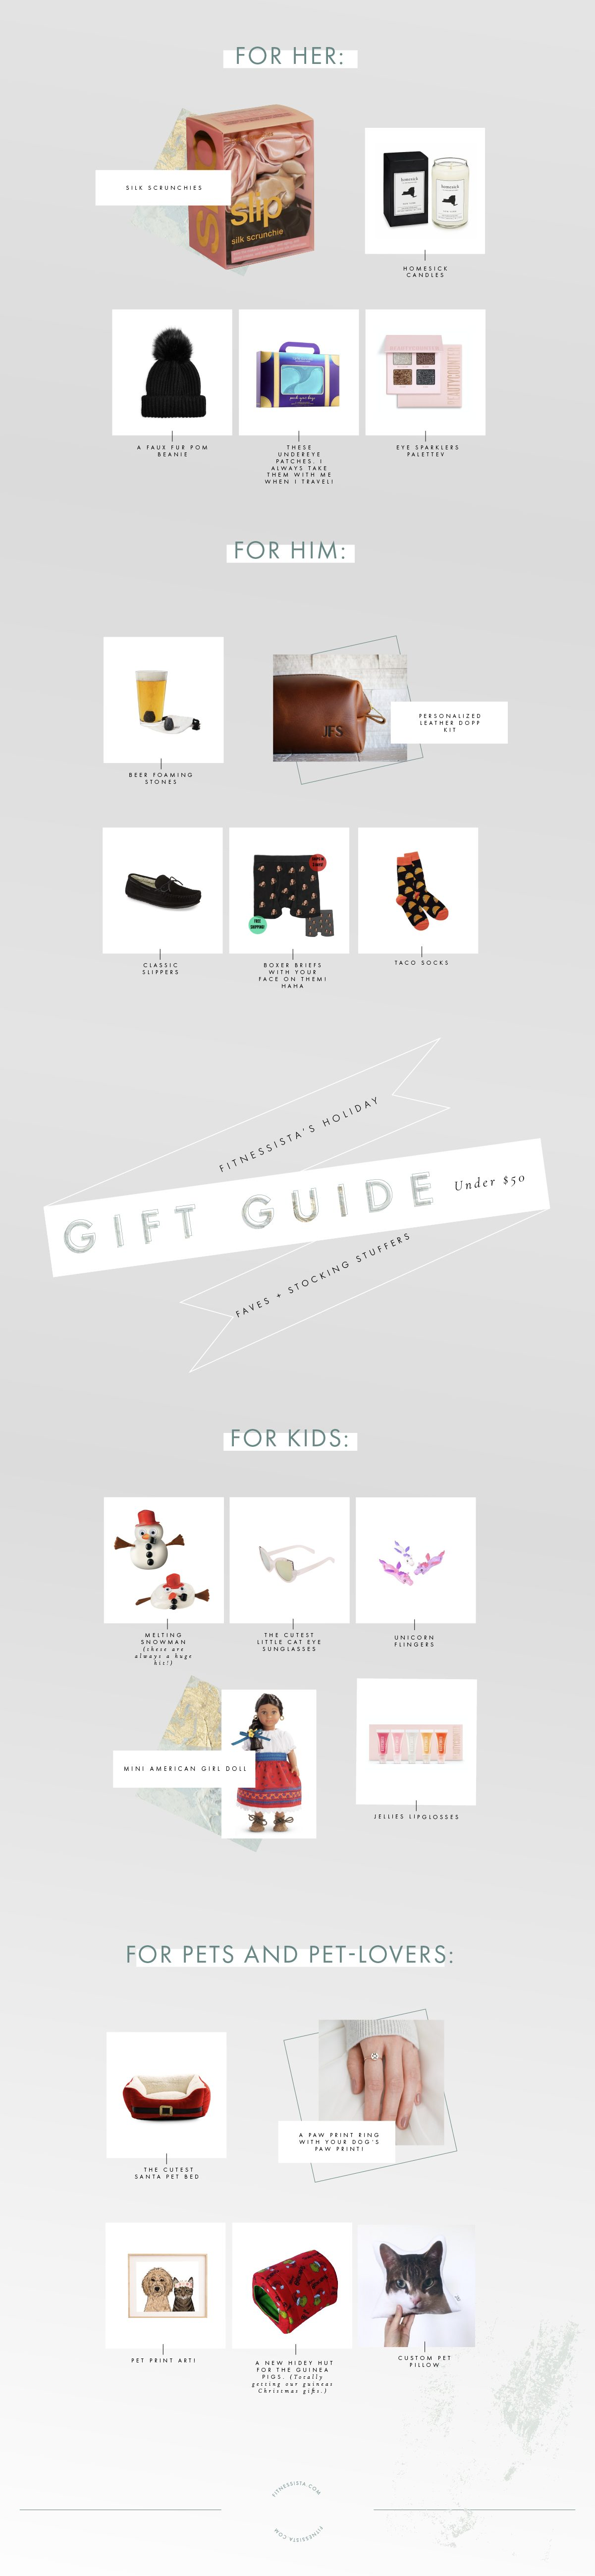 Under 50 gift ideas and stocking stuffers